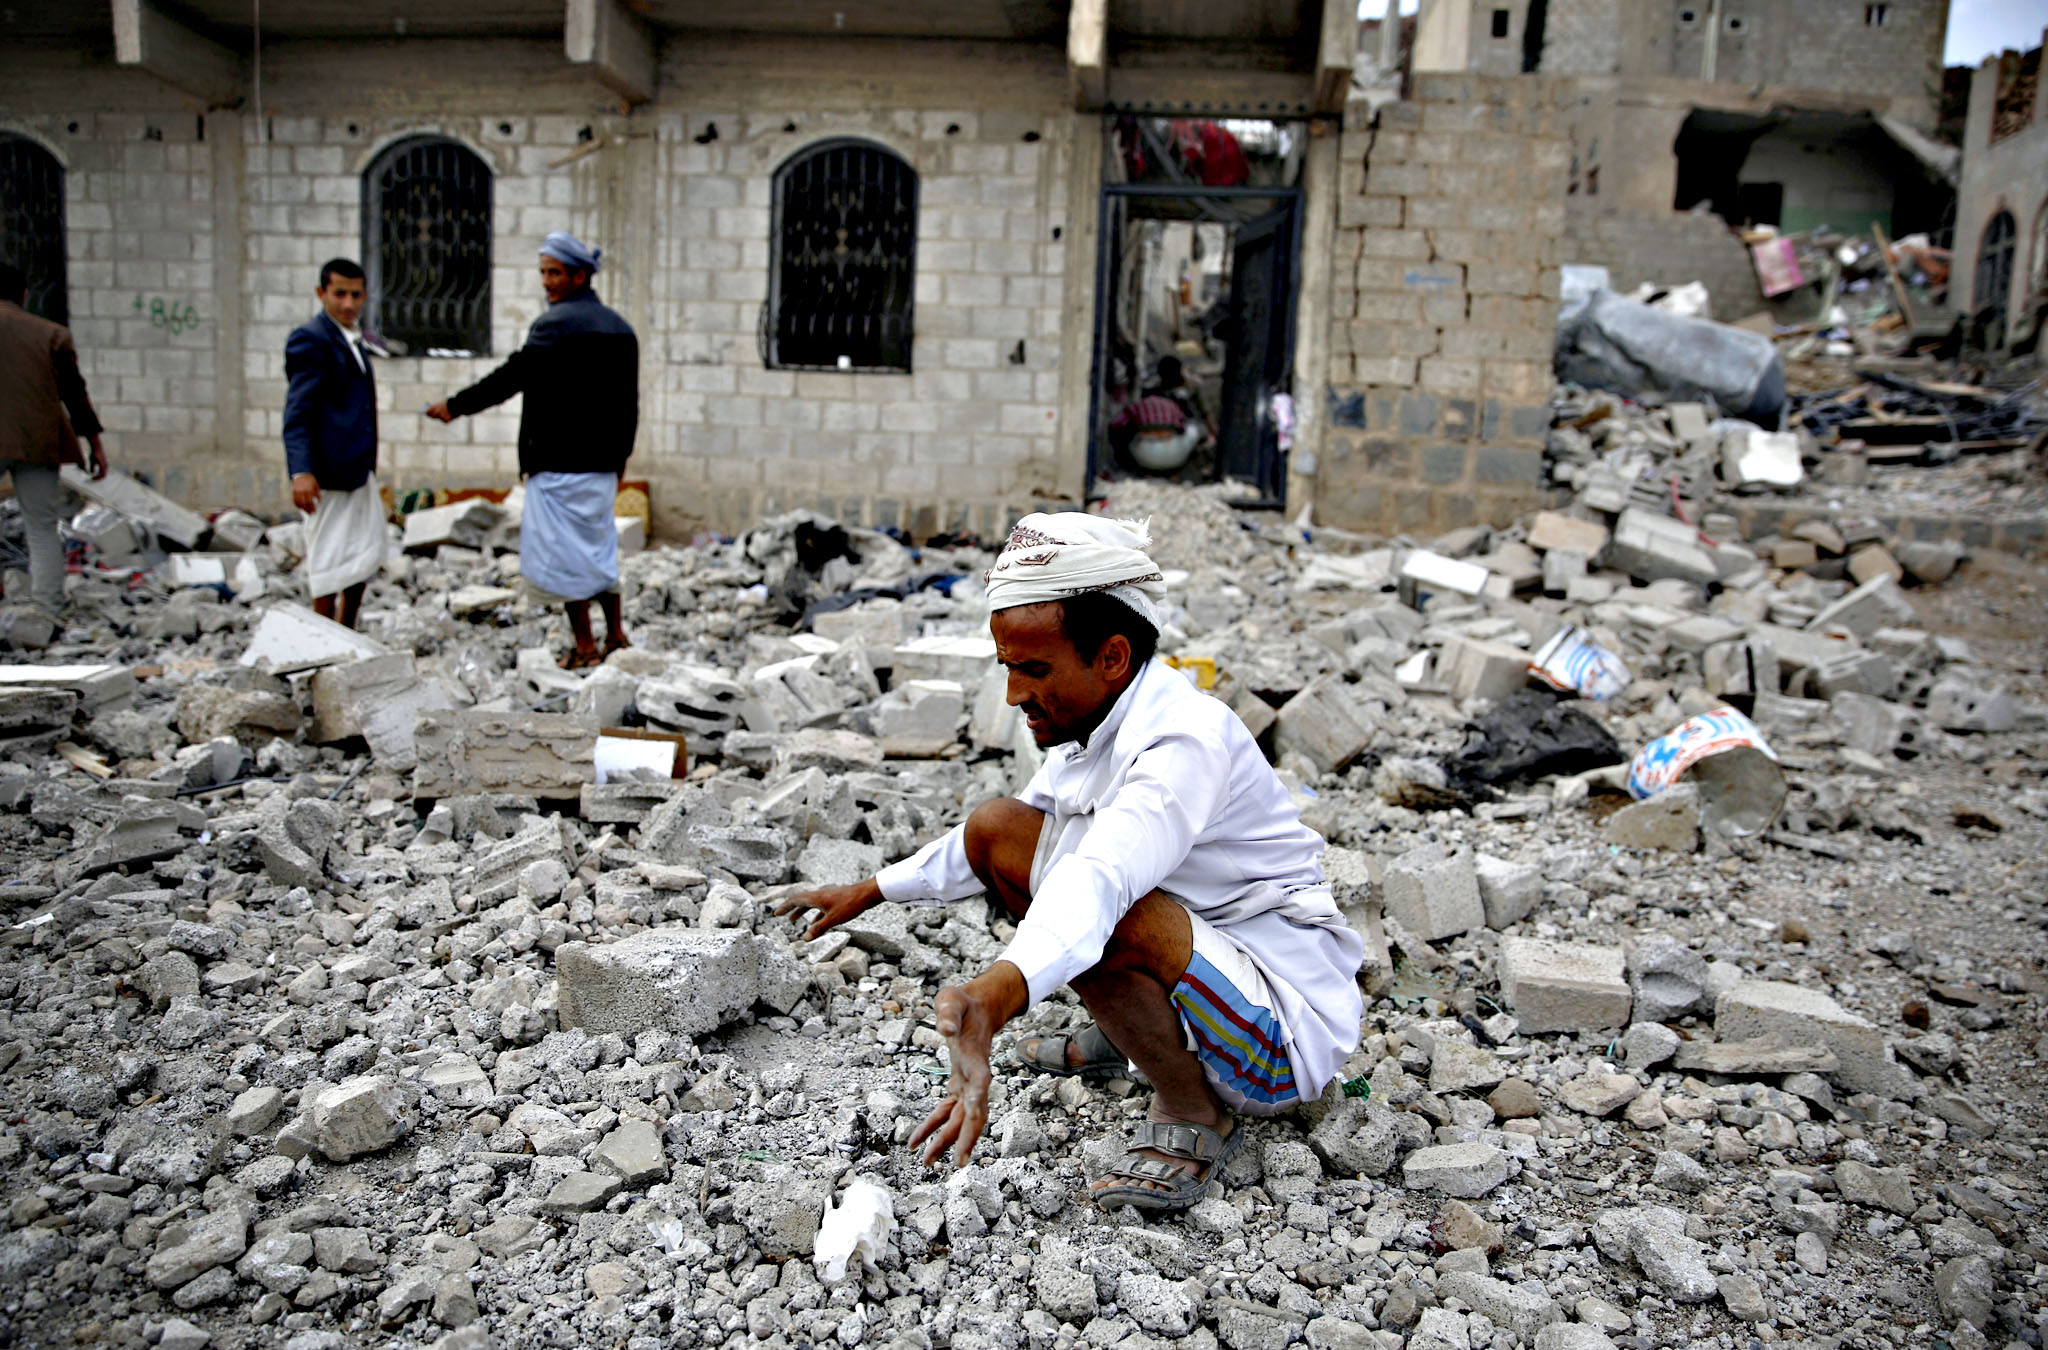 A man inspects on the rubble of a house destroyed by a Saudi-led airstrike in Sanaa, Yemen, Monday, Sept. 7, 2015.